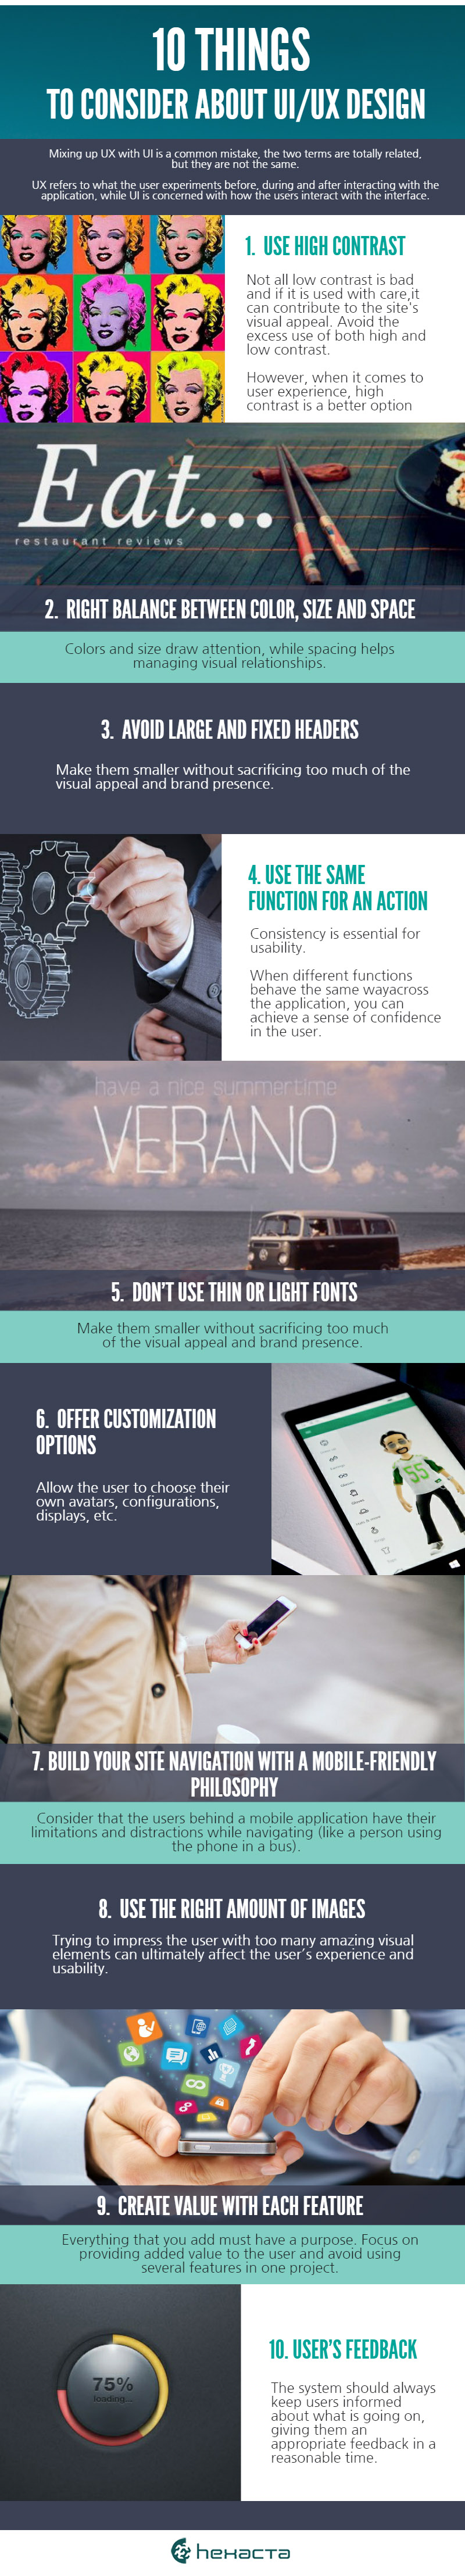 10 things to avoid on UXUI design infographic